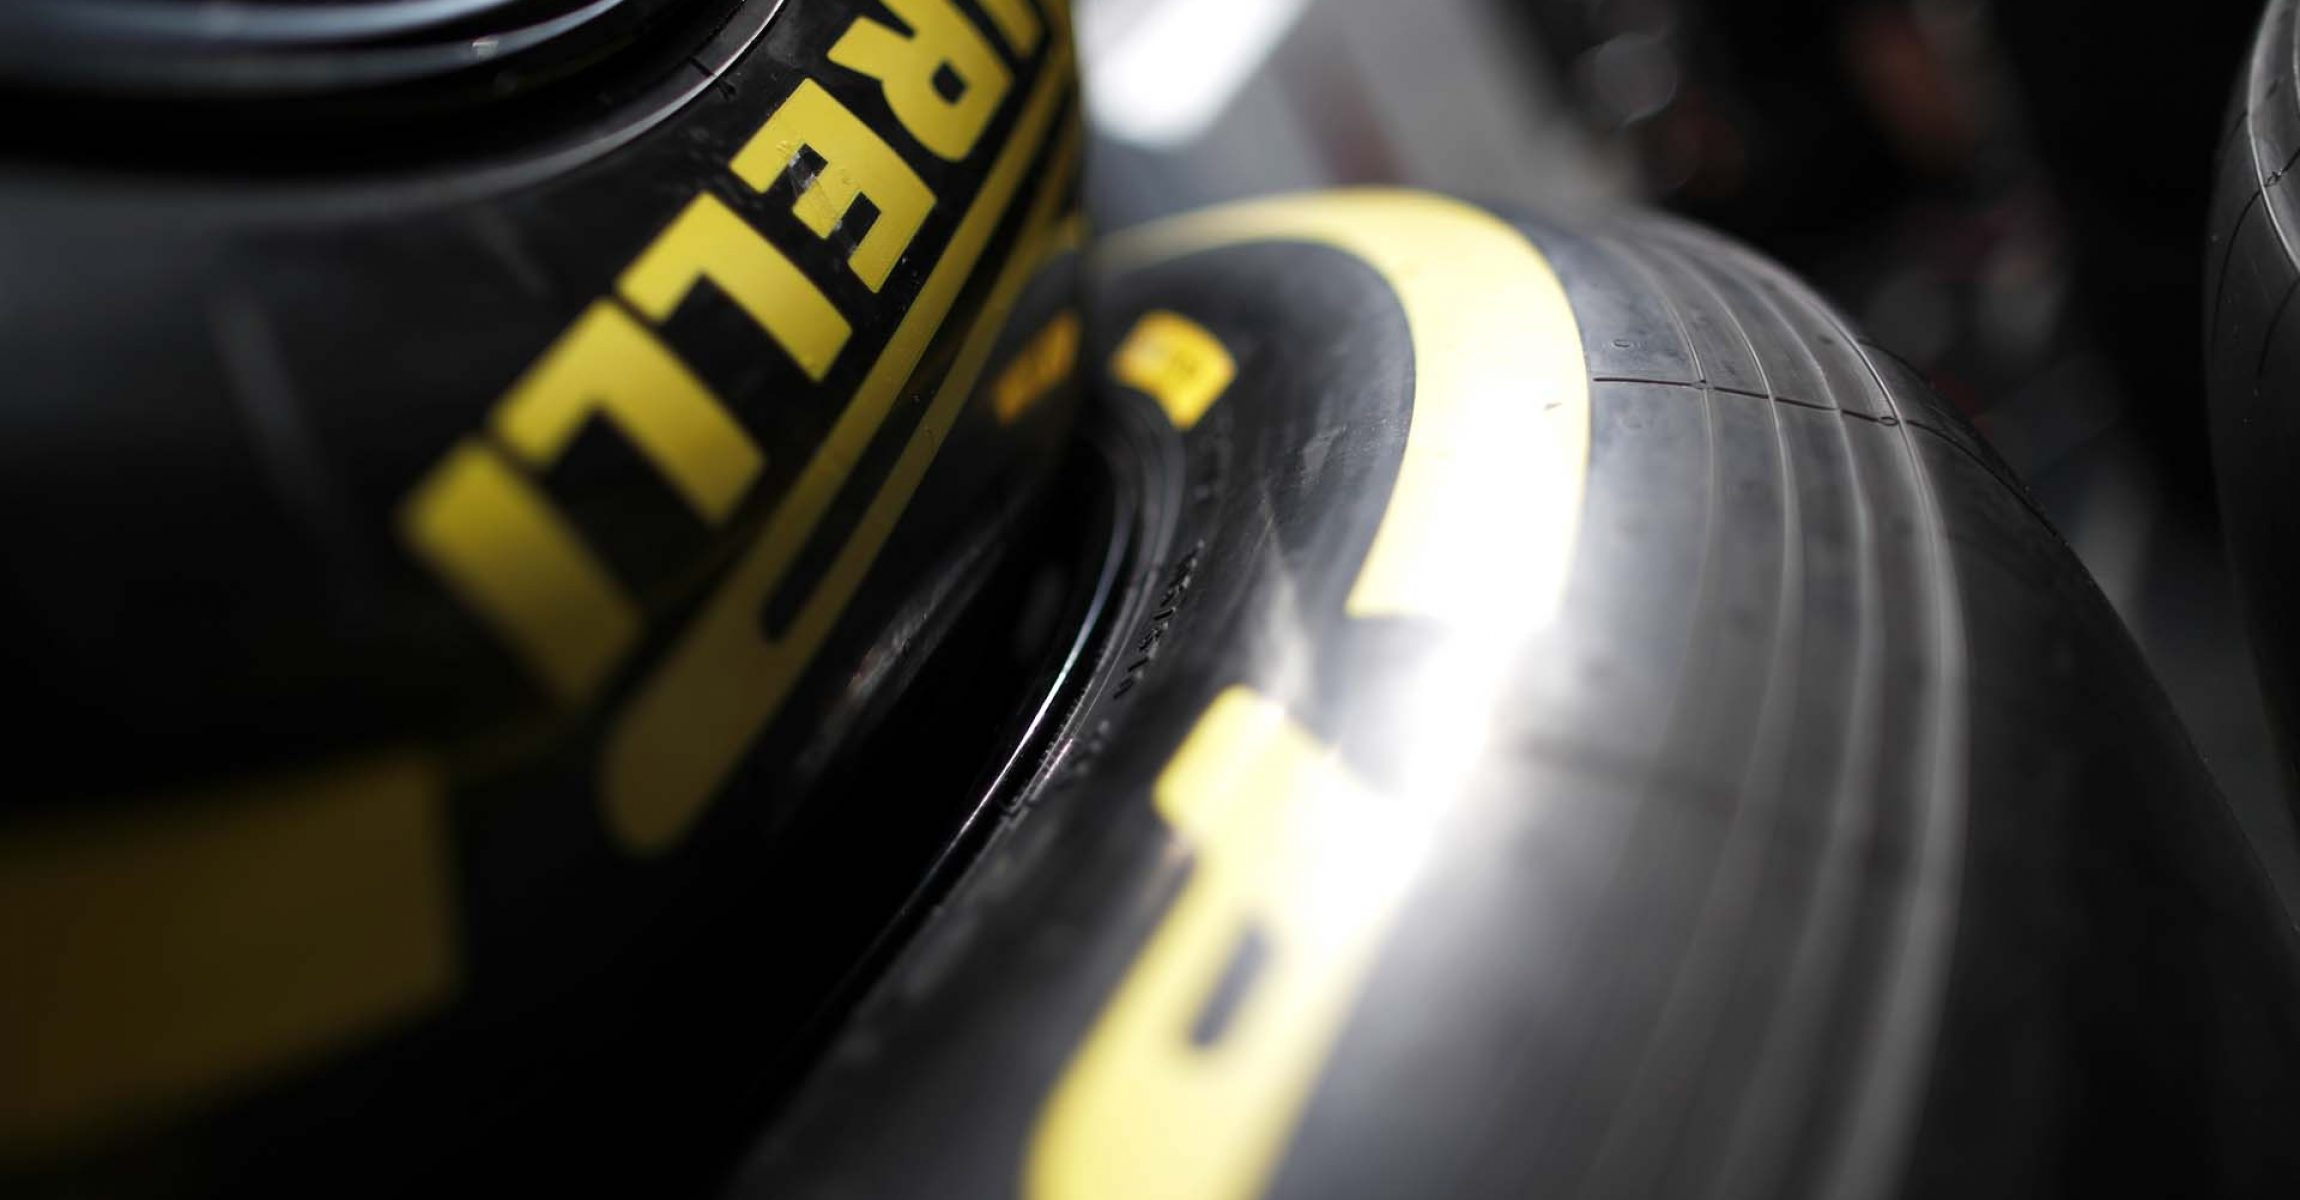 SPA-FRANCORCHAMPS, BELGIUM - AUGUST 29: Pirelli Tyers during the Belgian GP at Spa-Francorchamps on August 29, 2019 in Spa-Francorchamps, Belgium. (Photo by Zak Mauger / LAT Images)